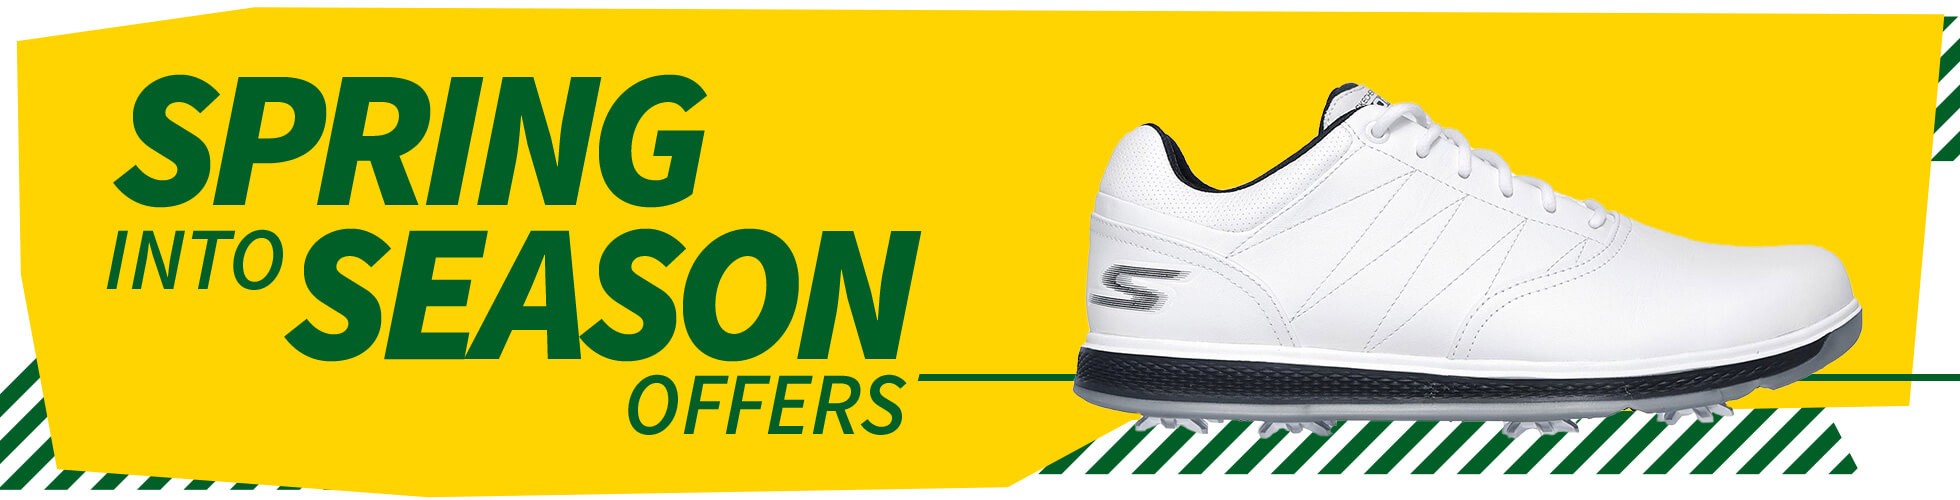 the season starts here with our major offers